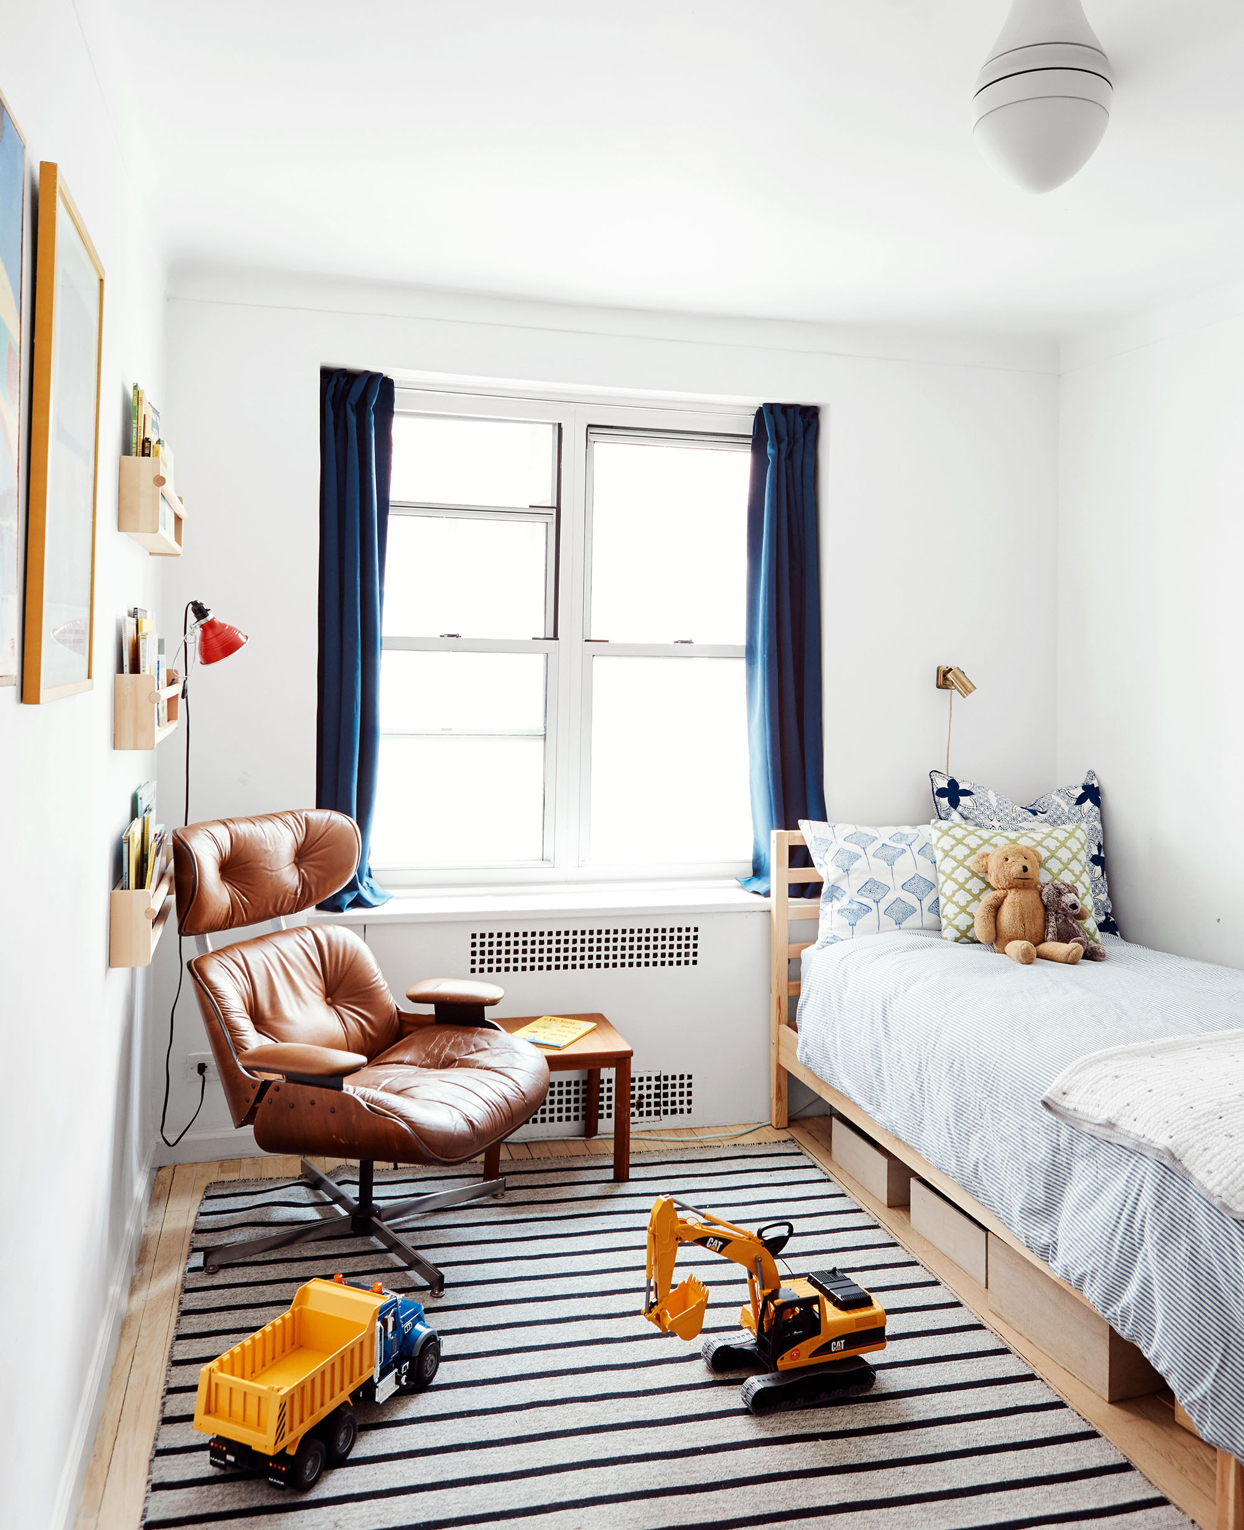 childs bedroom with toy trucks on floor